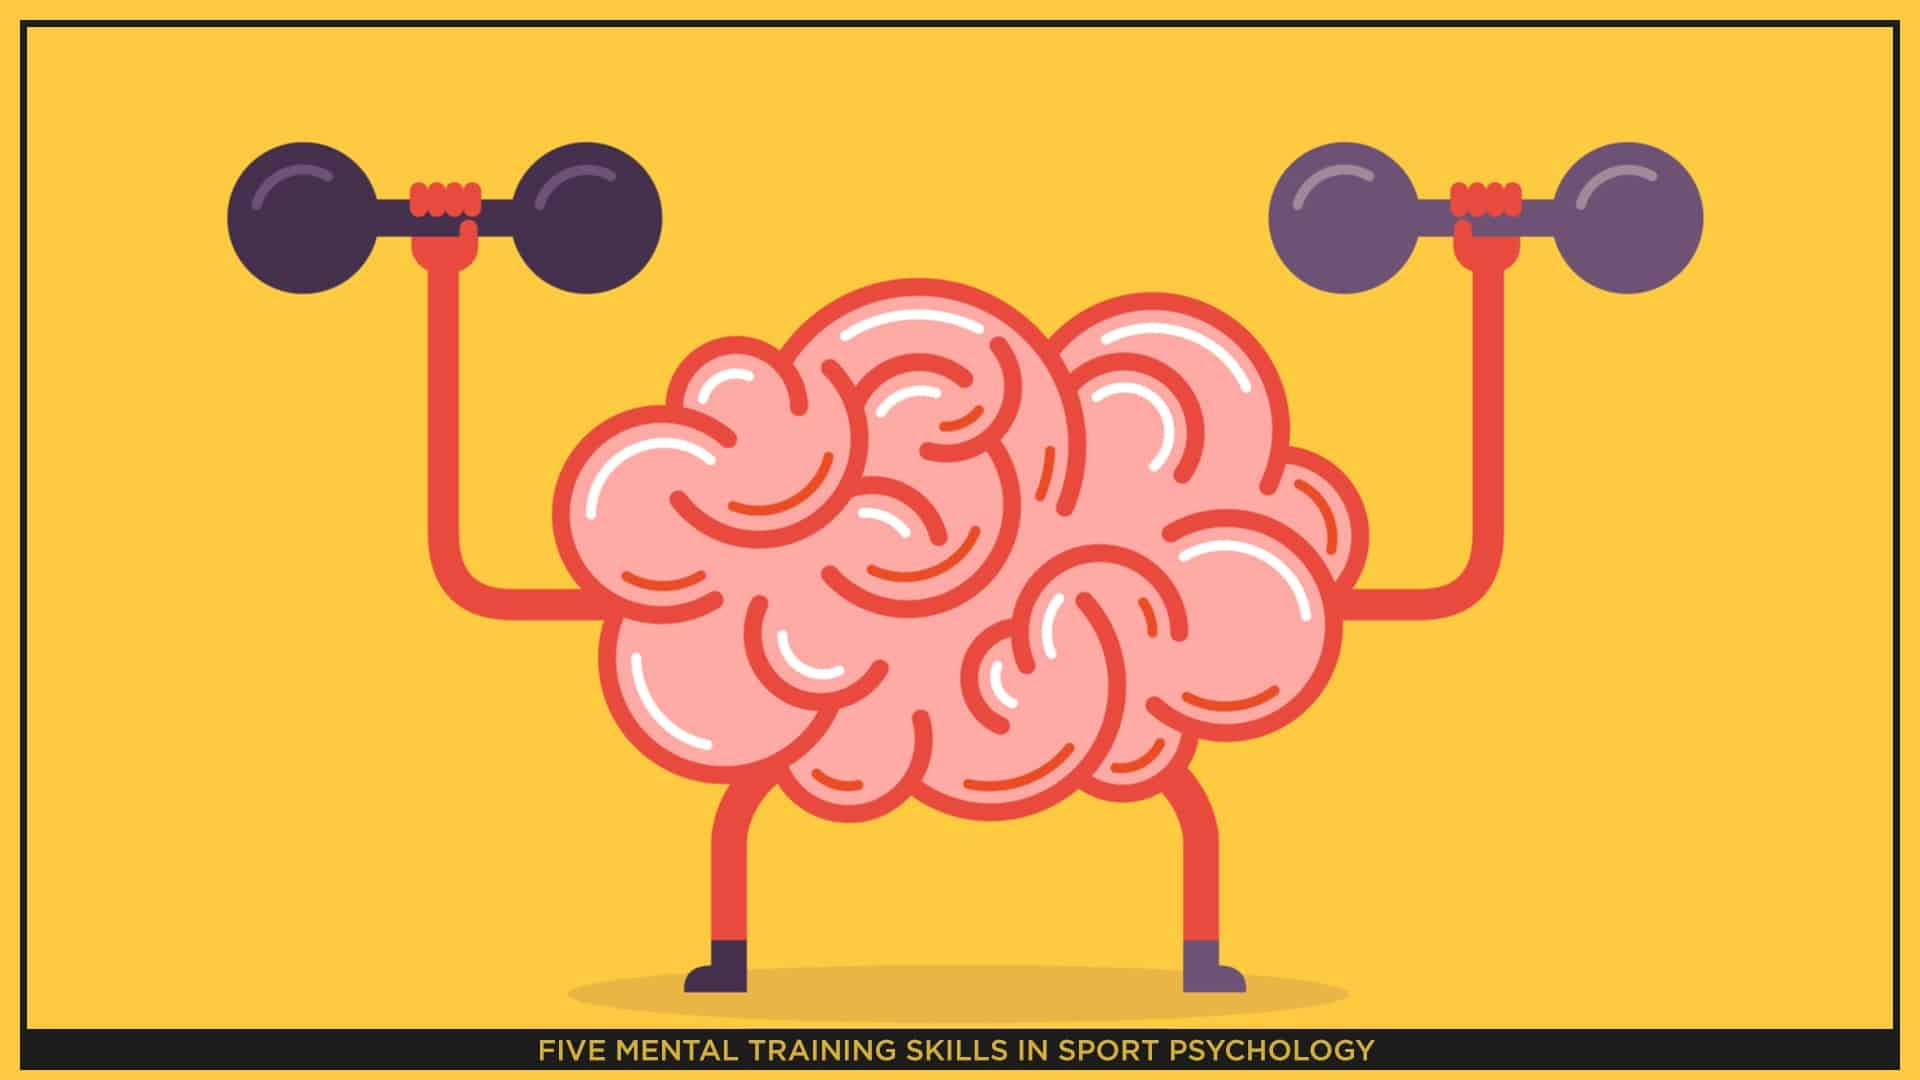 An animated image of a brain in pink colour, while lifting weights, on a yellow background.